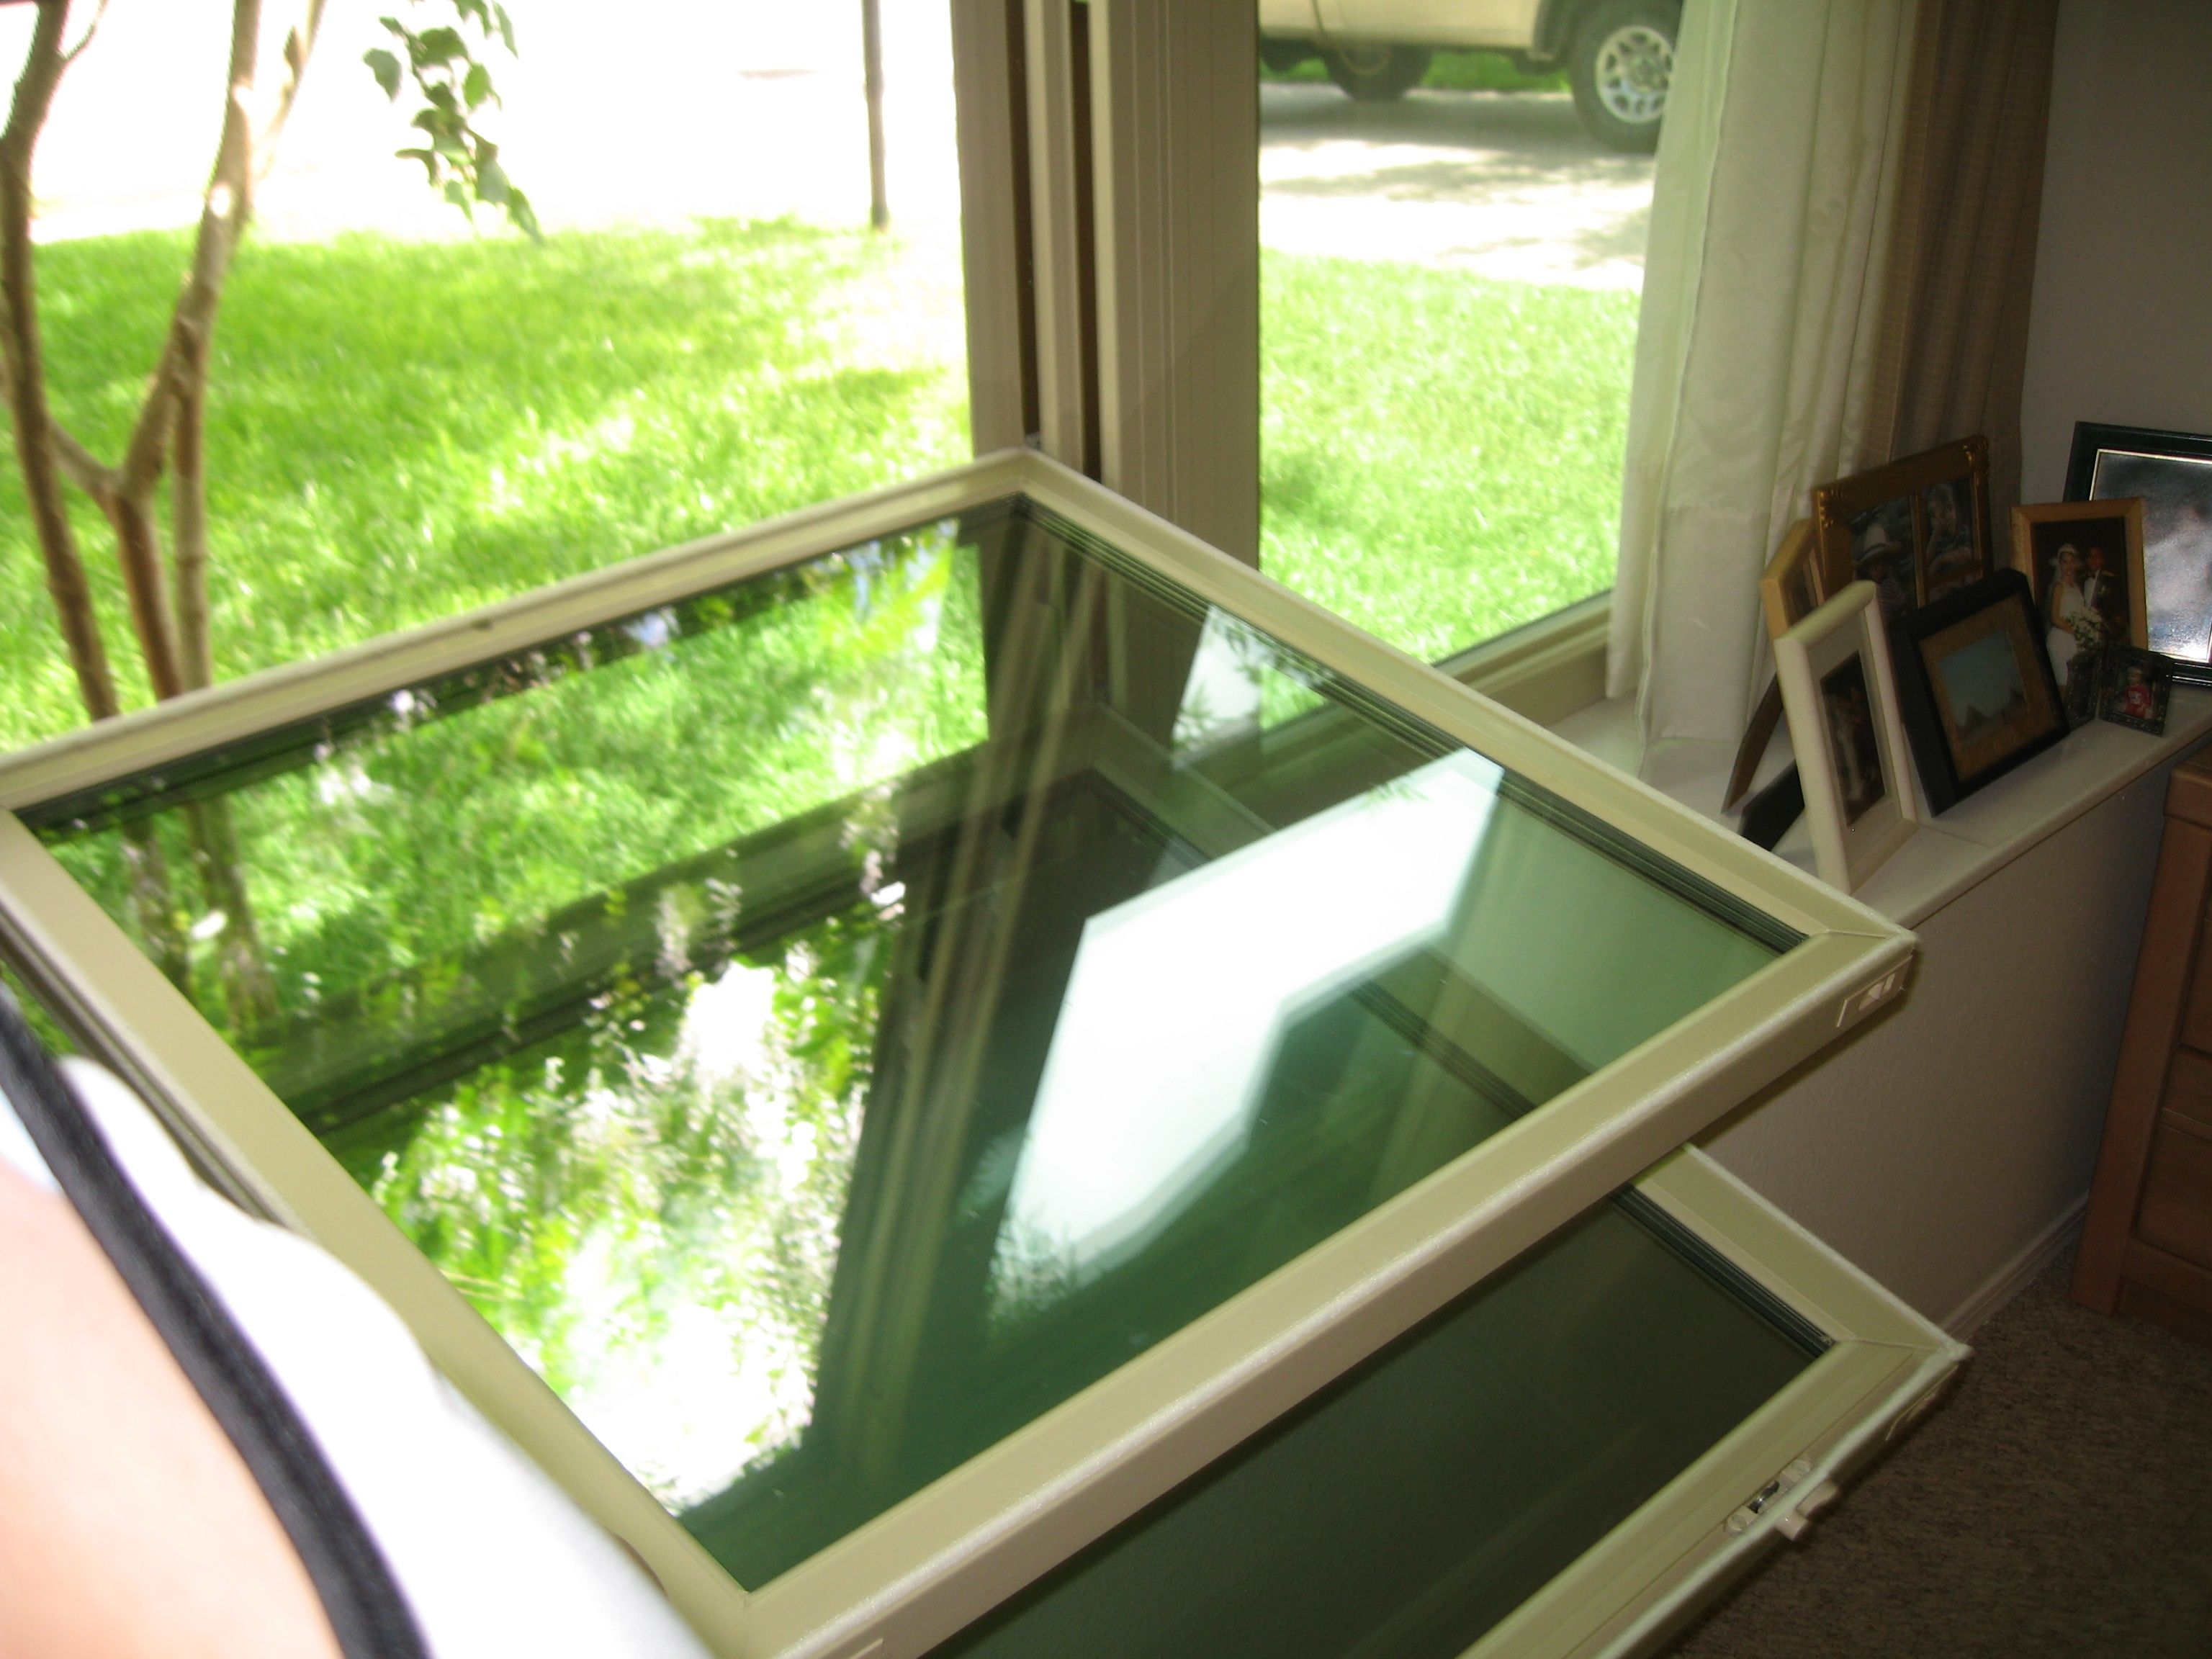 Amazing Top 5 Replacement Windows #1: Here Are The Top 5 Questions We Get About Replacement Windows So You Can Be  Sure